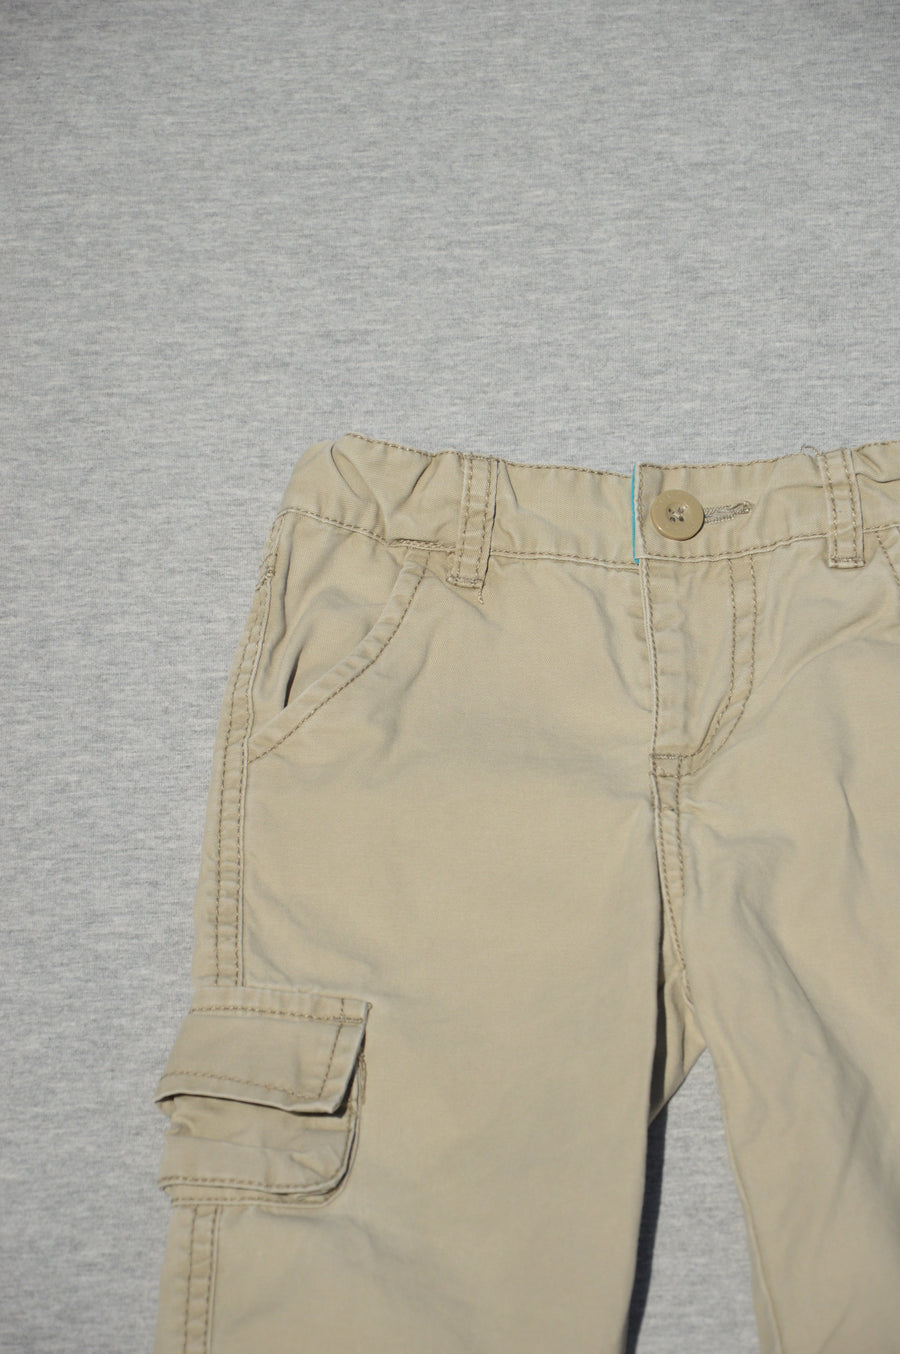 Pumpkin Patch cream cargo pants, size 6-12m